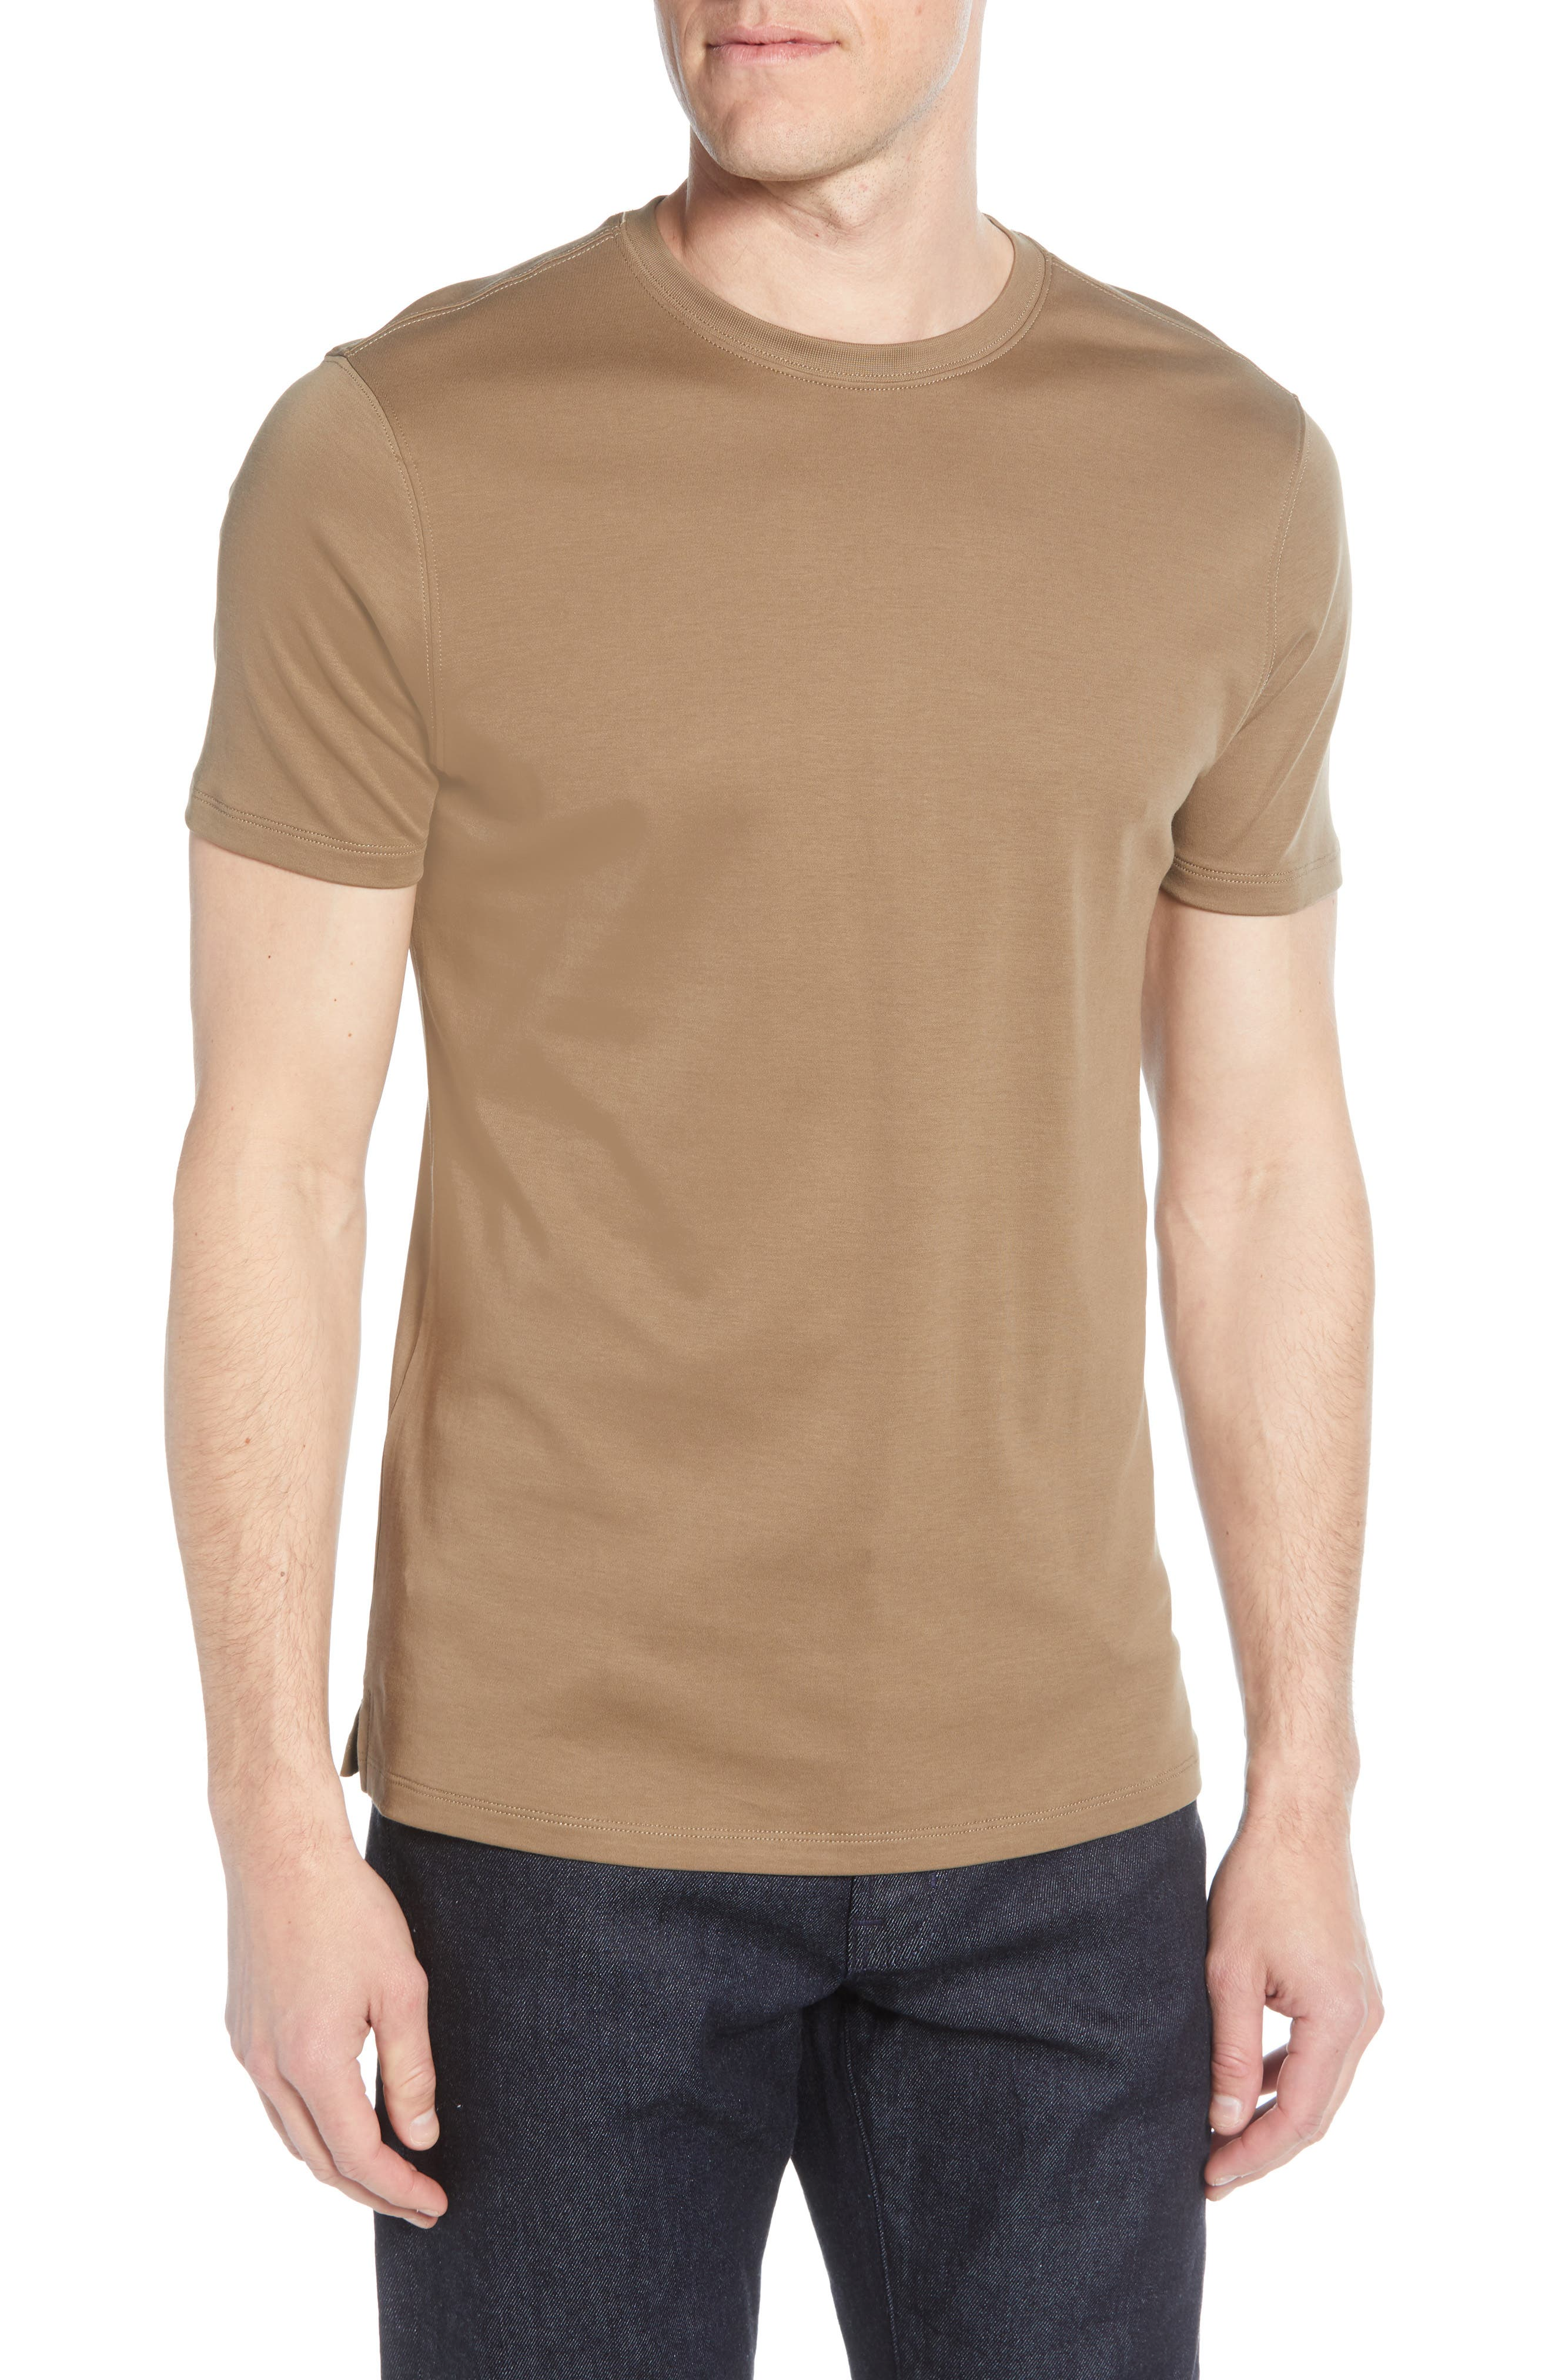 Georgia Crewneck T-Shirt, Main, color, 242